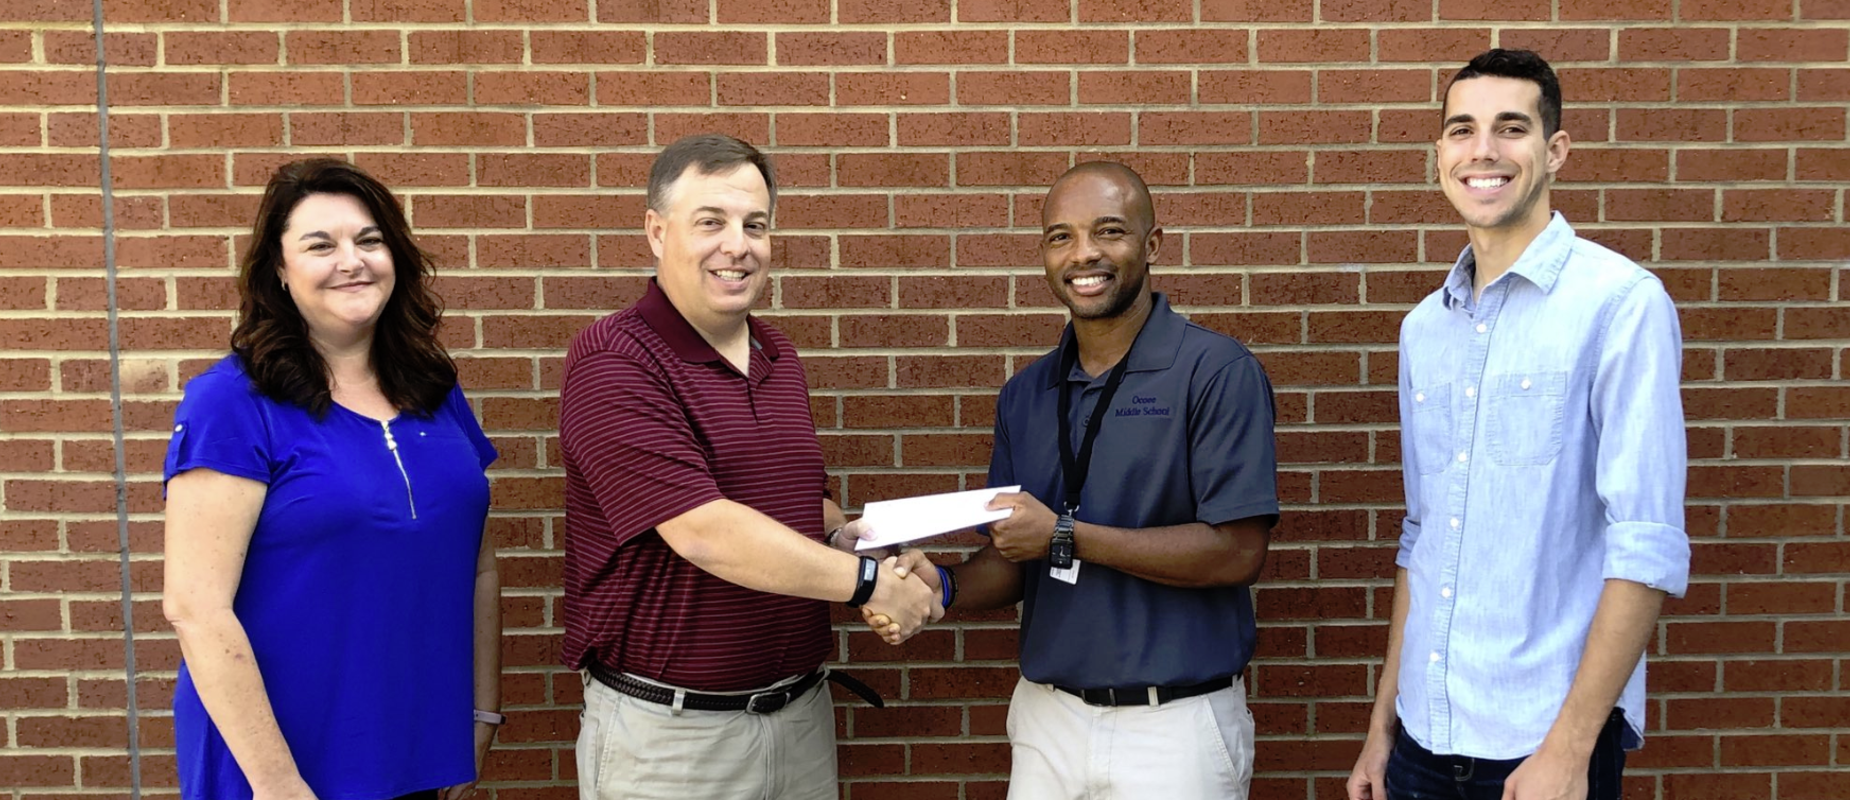 OMS receives STEM grant from Wacker